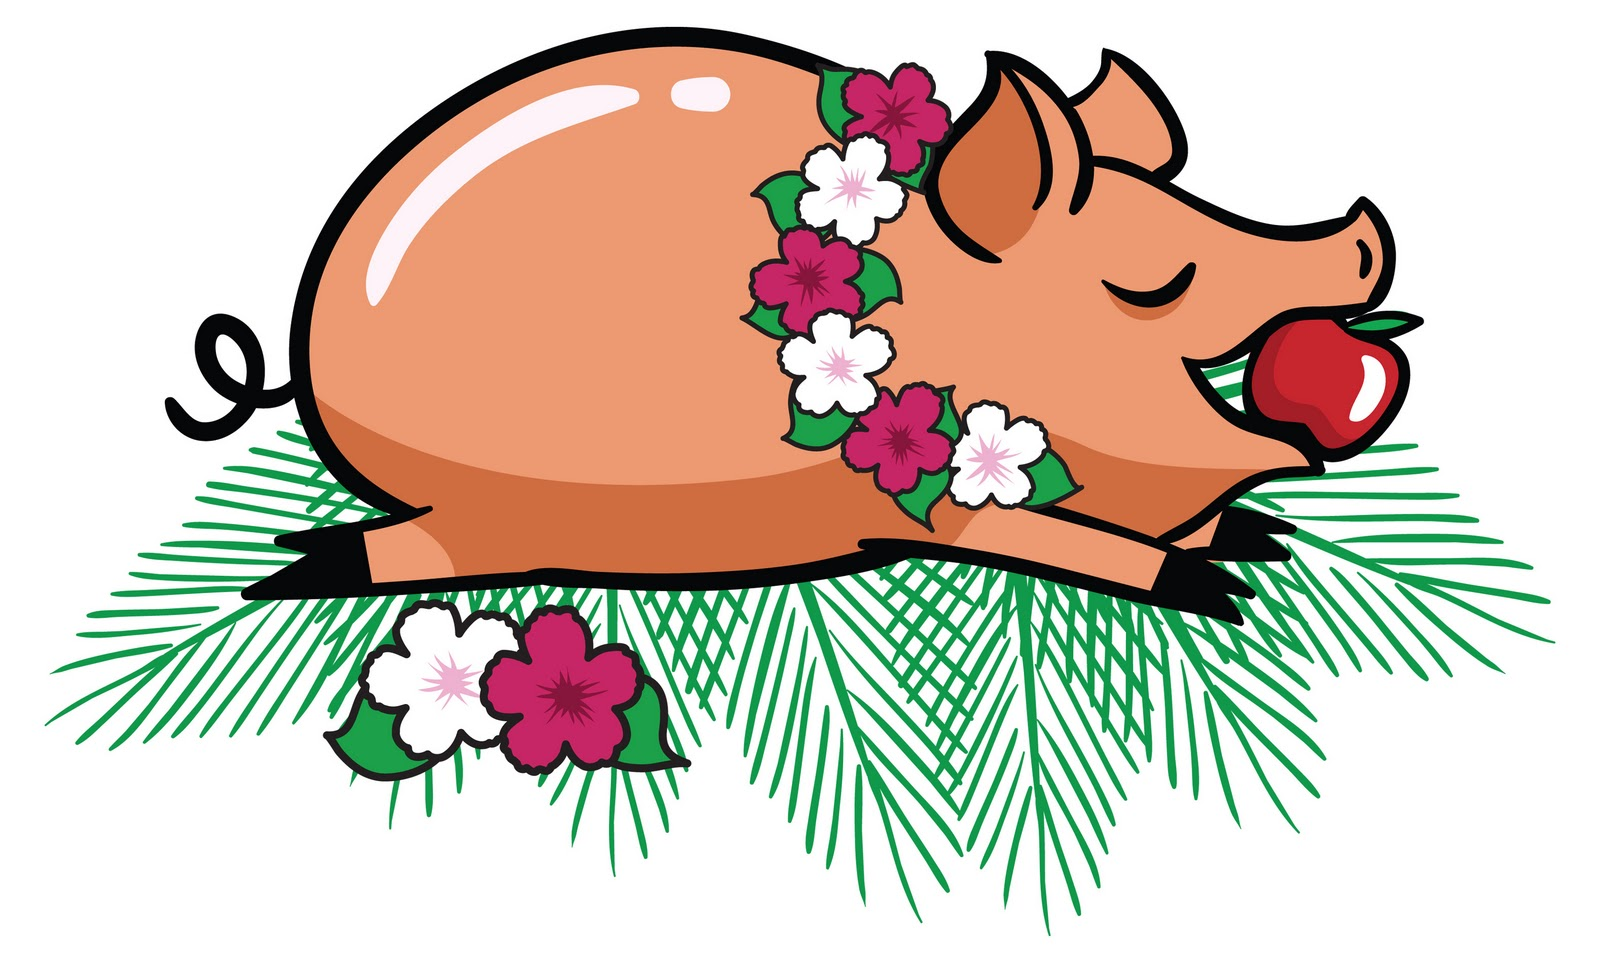 Roast Pig Cartoon Picture Group with 48+ items.